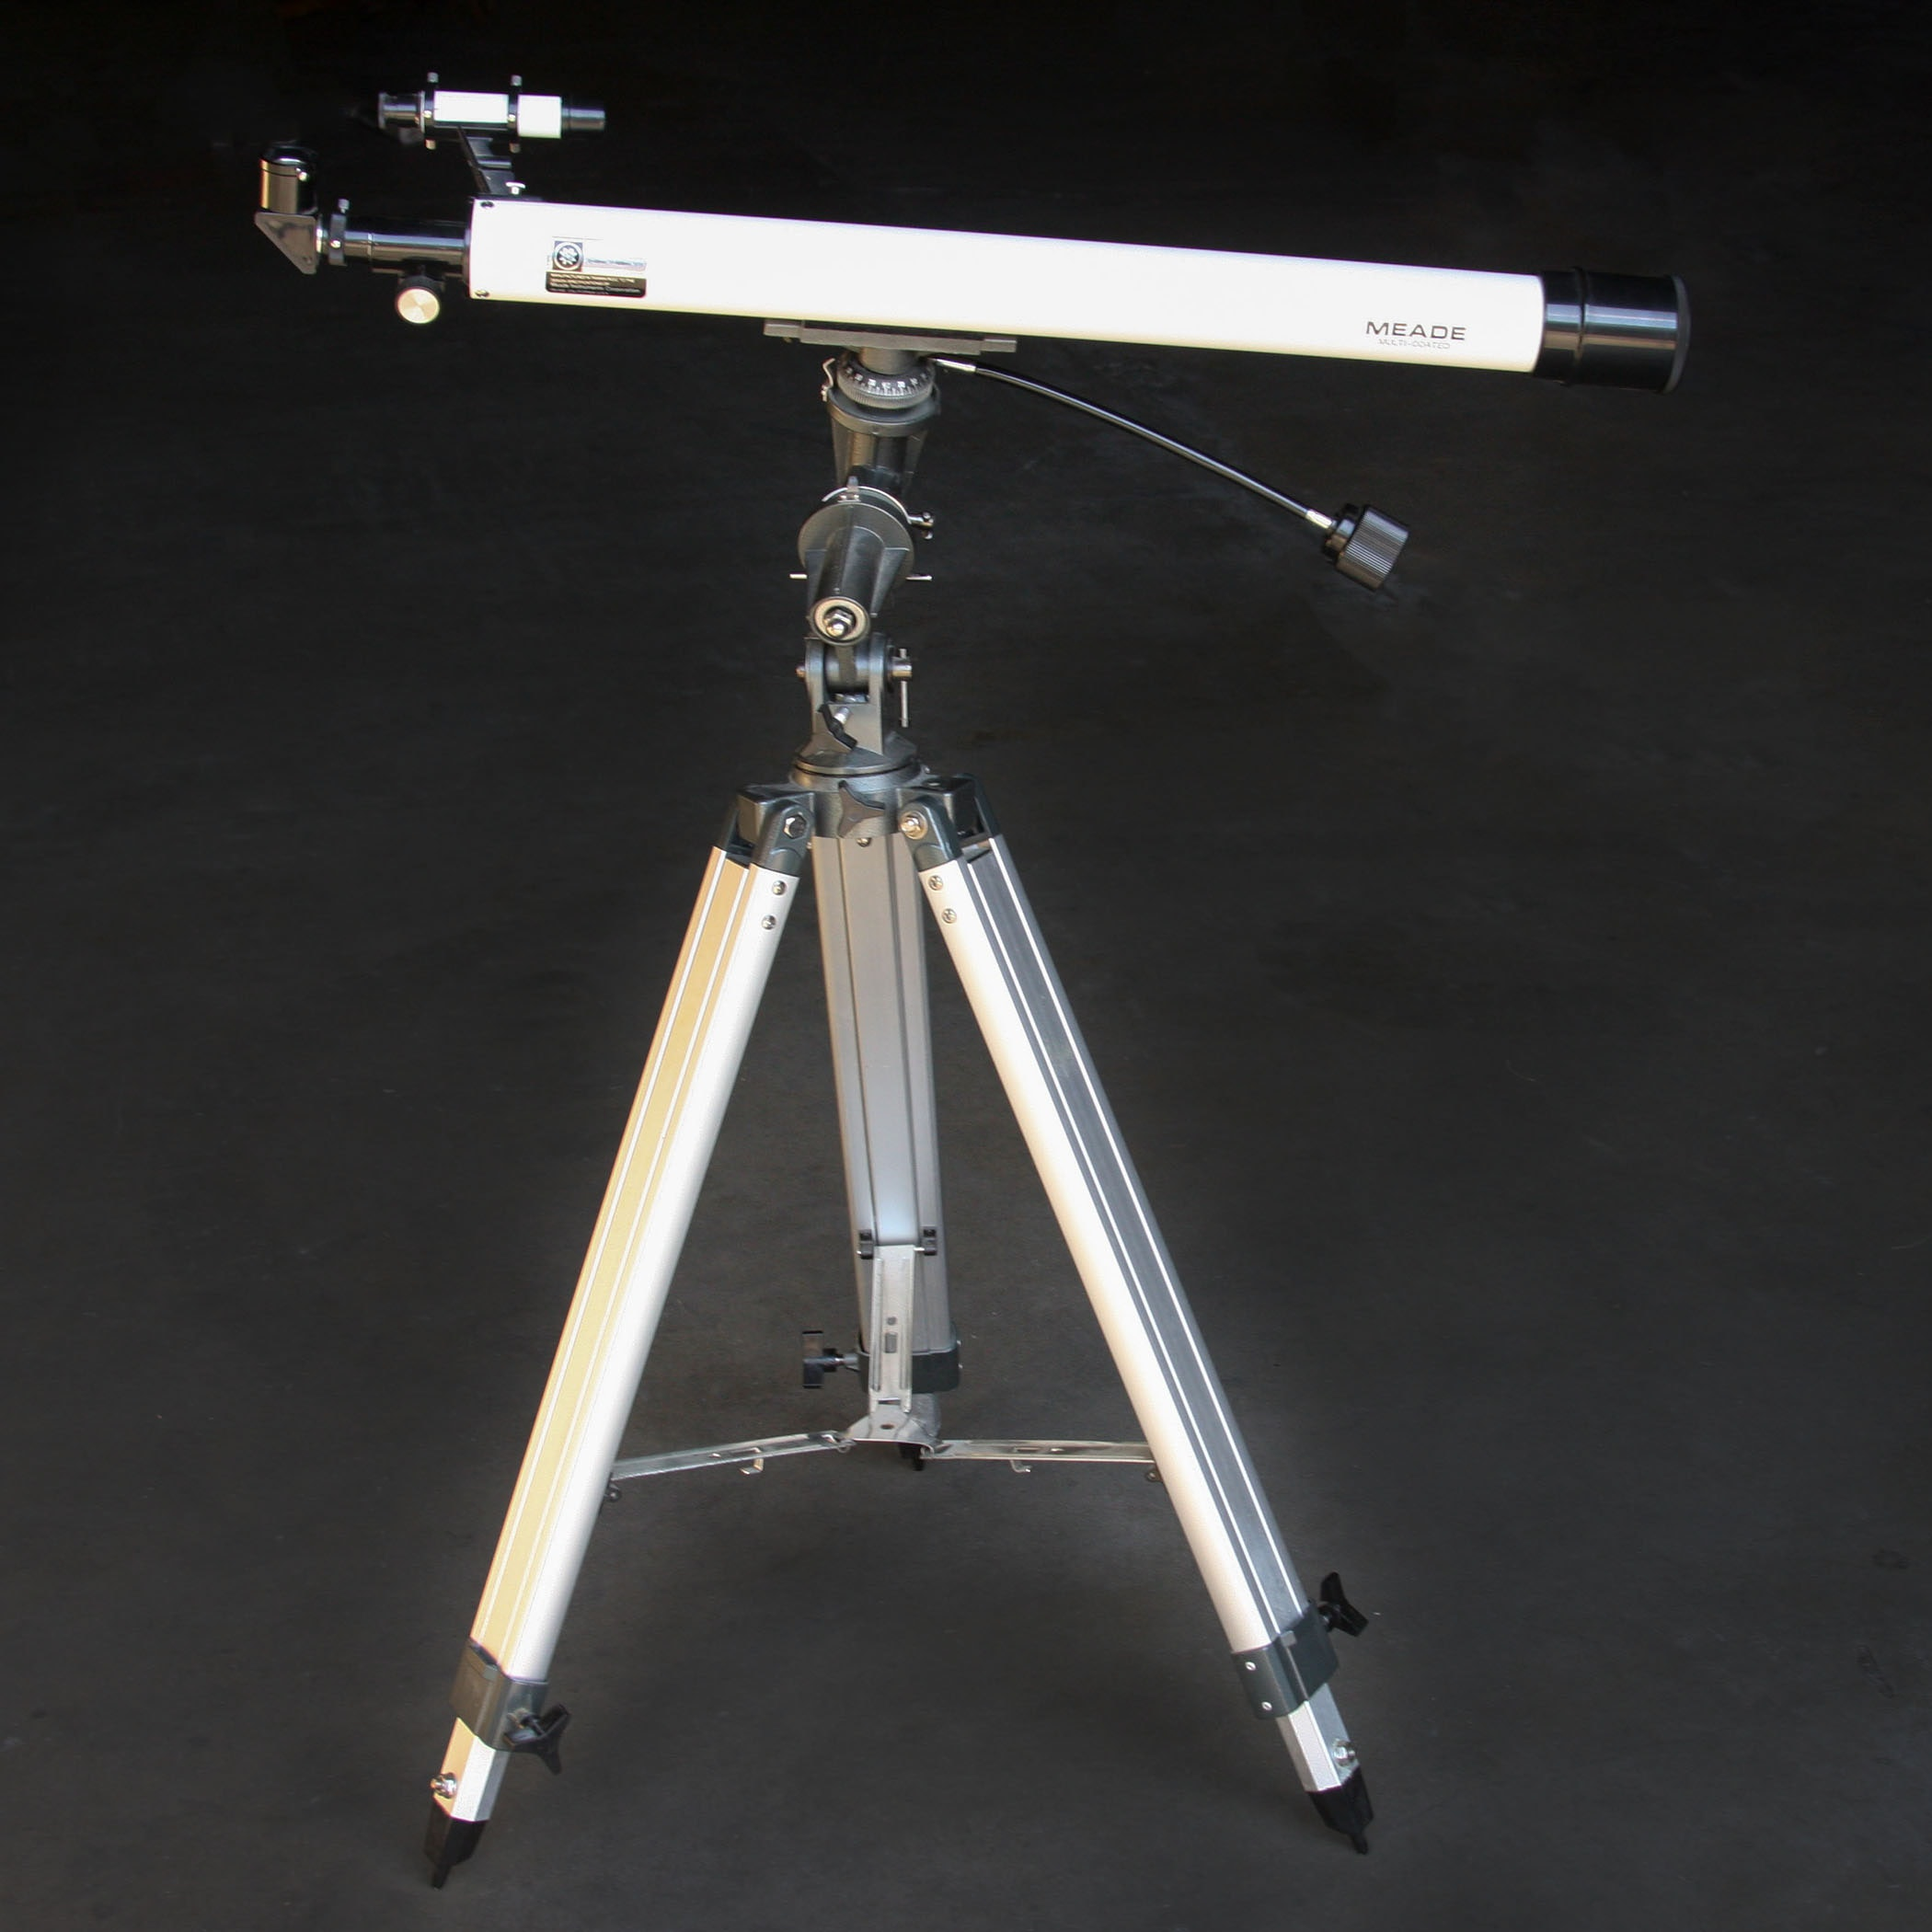 Meade Model 285 Telescope